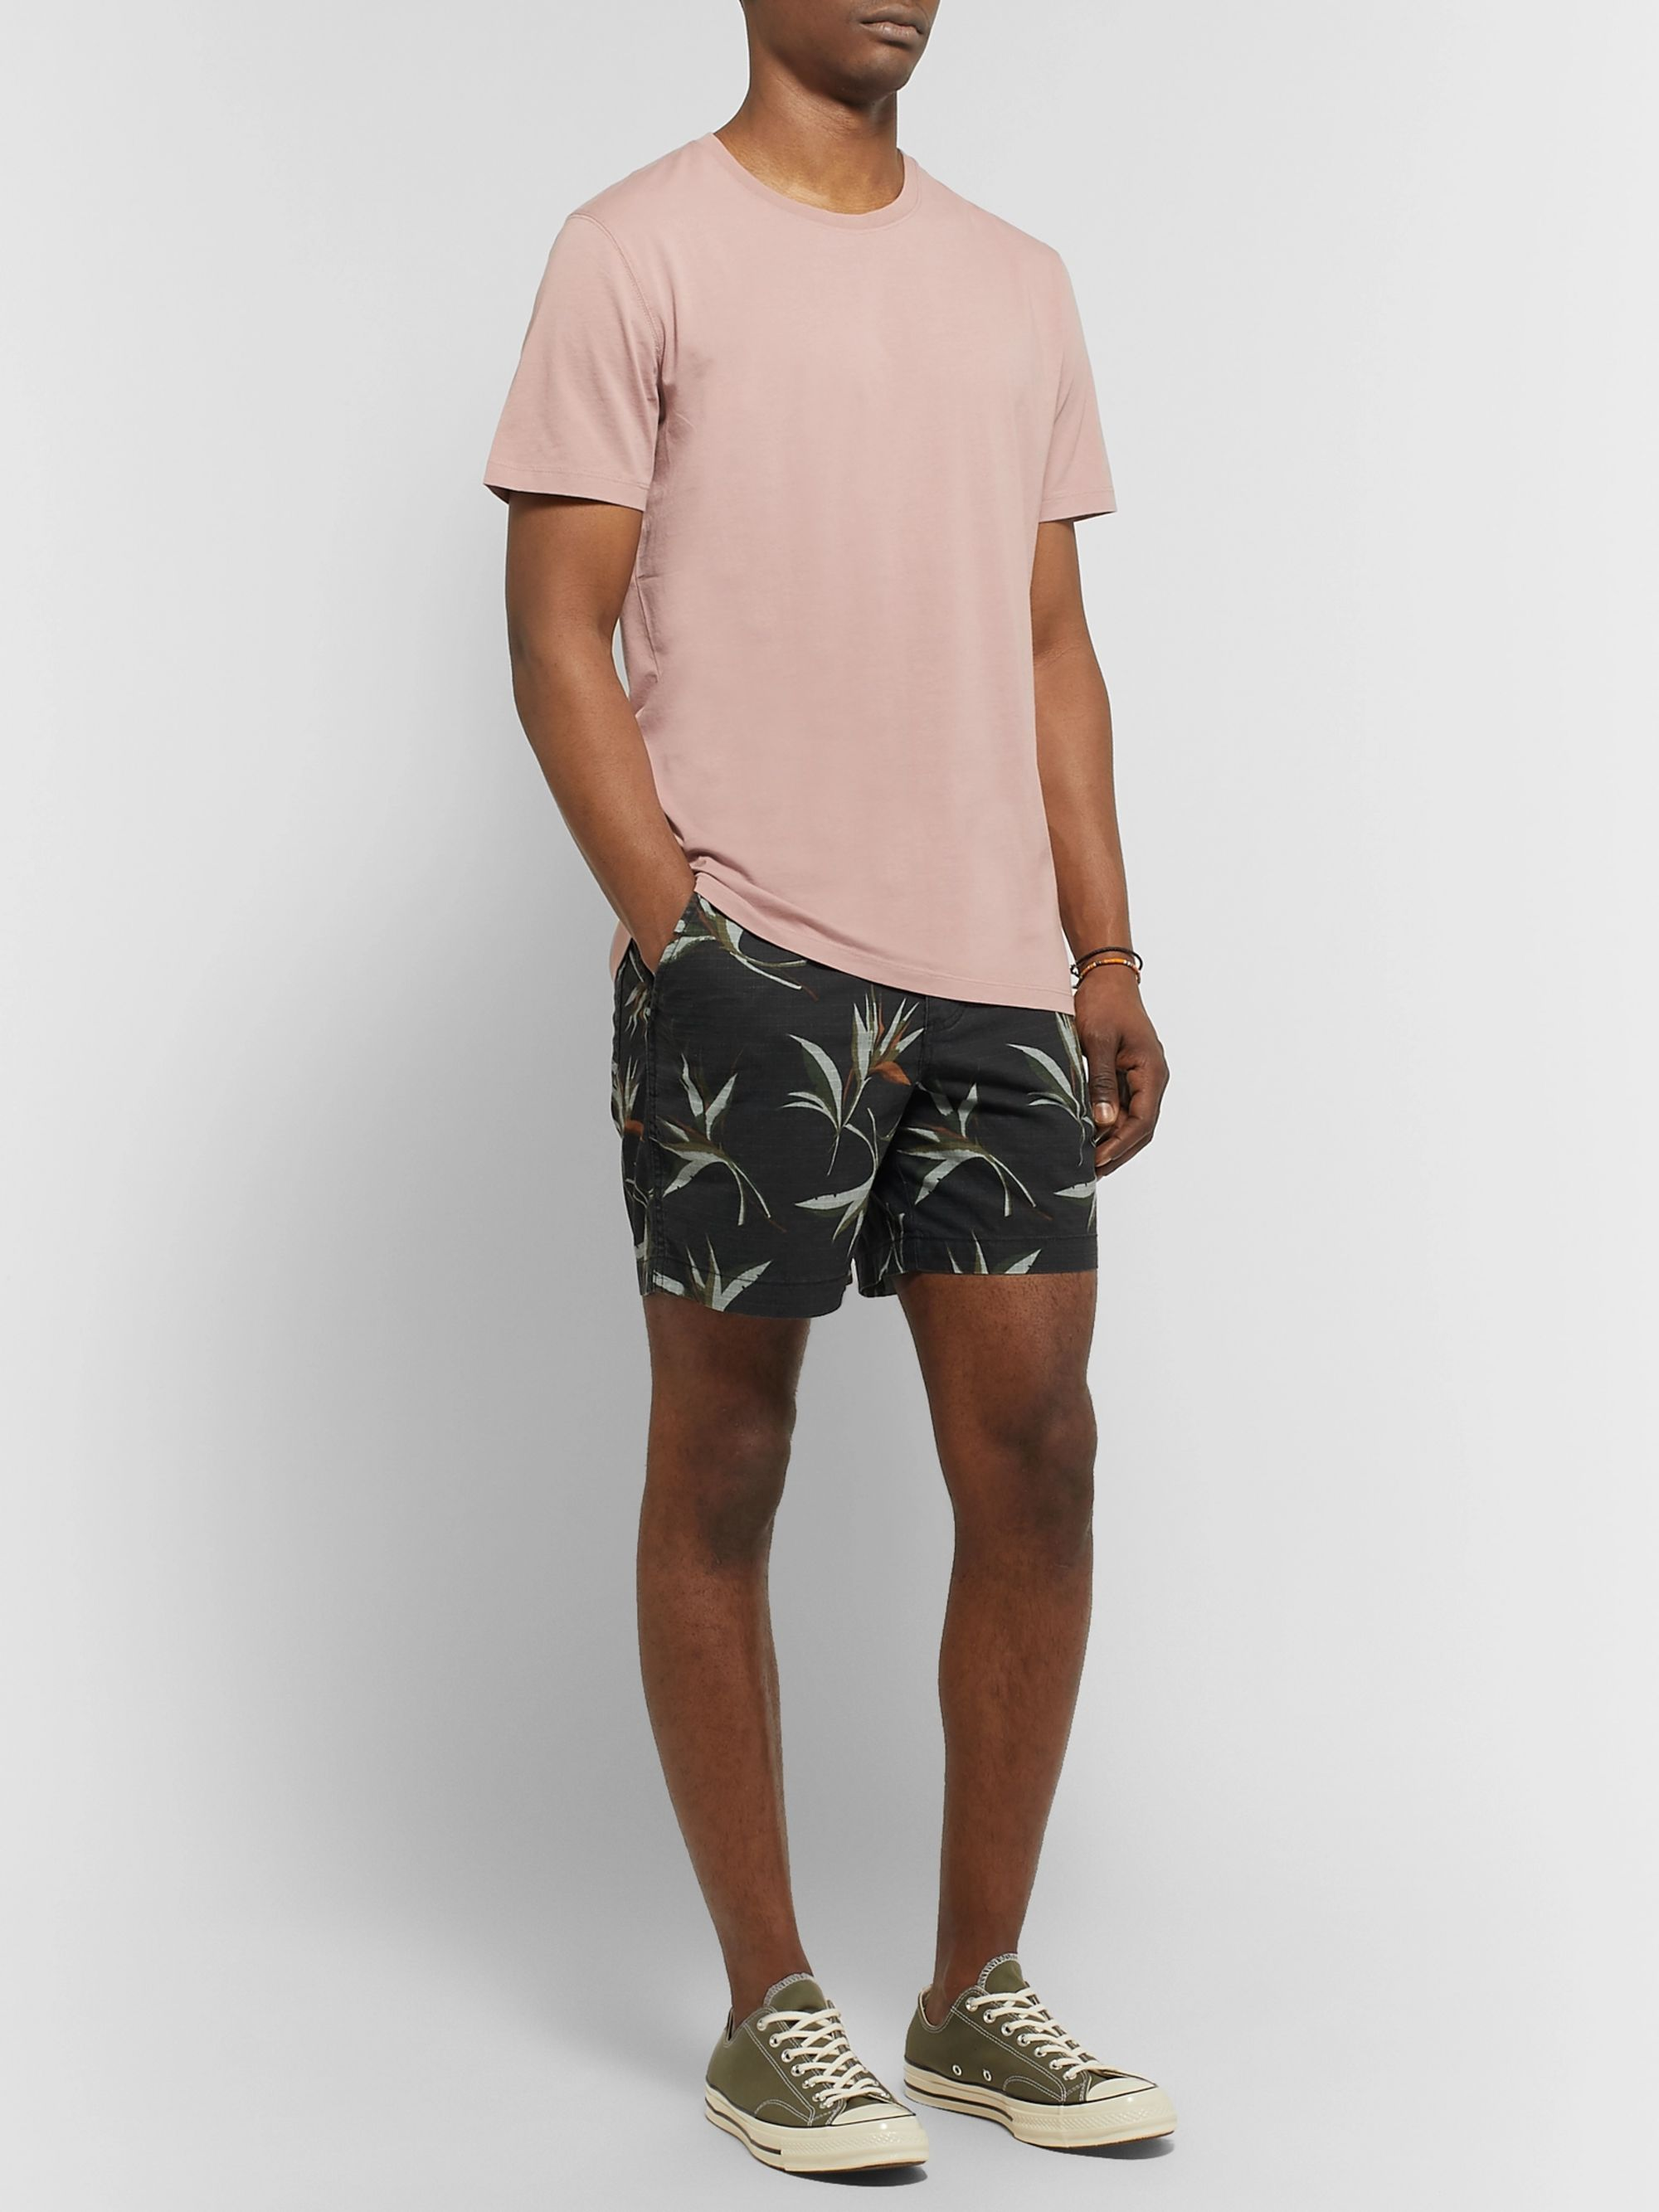 J.Crew Printed Cotton-Ripstop Shorts